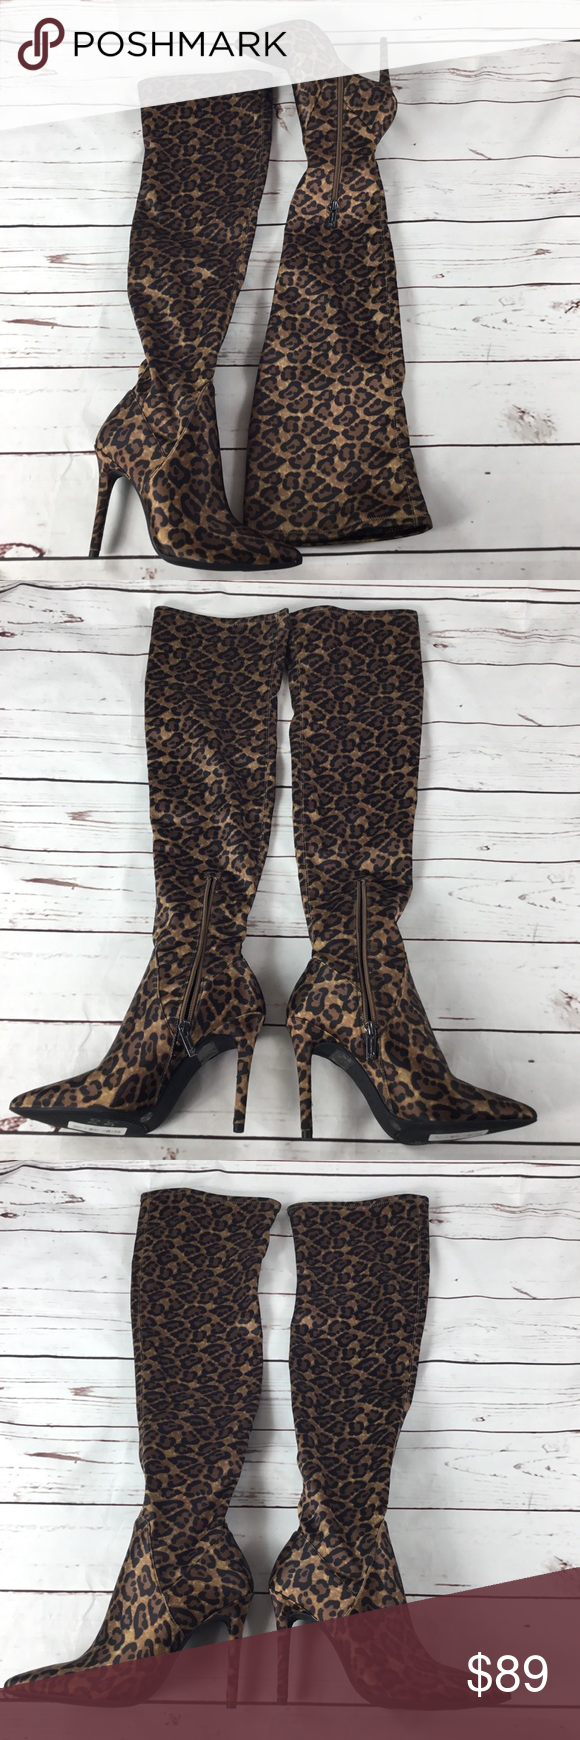 99d0af0b207 Sexy Leopard Print Over The Knee Boot J. Simpson NWT